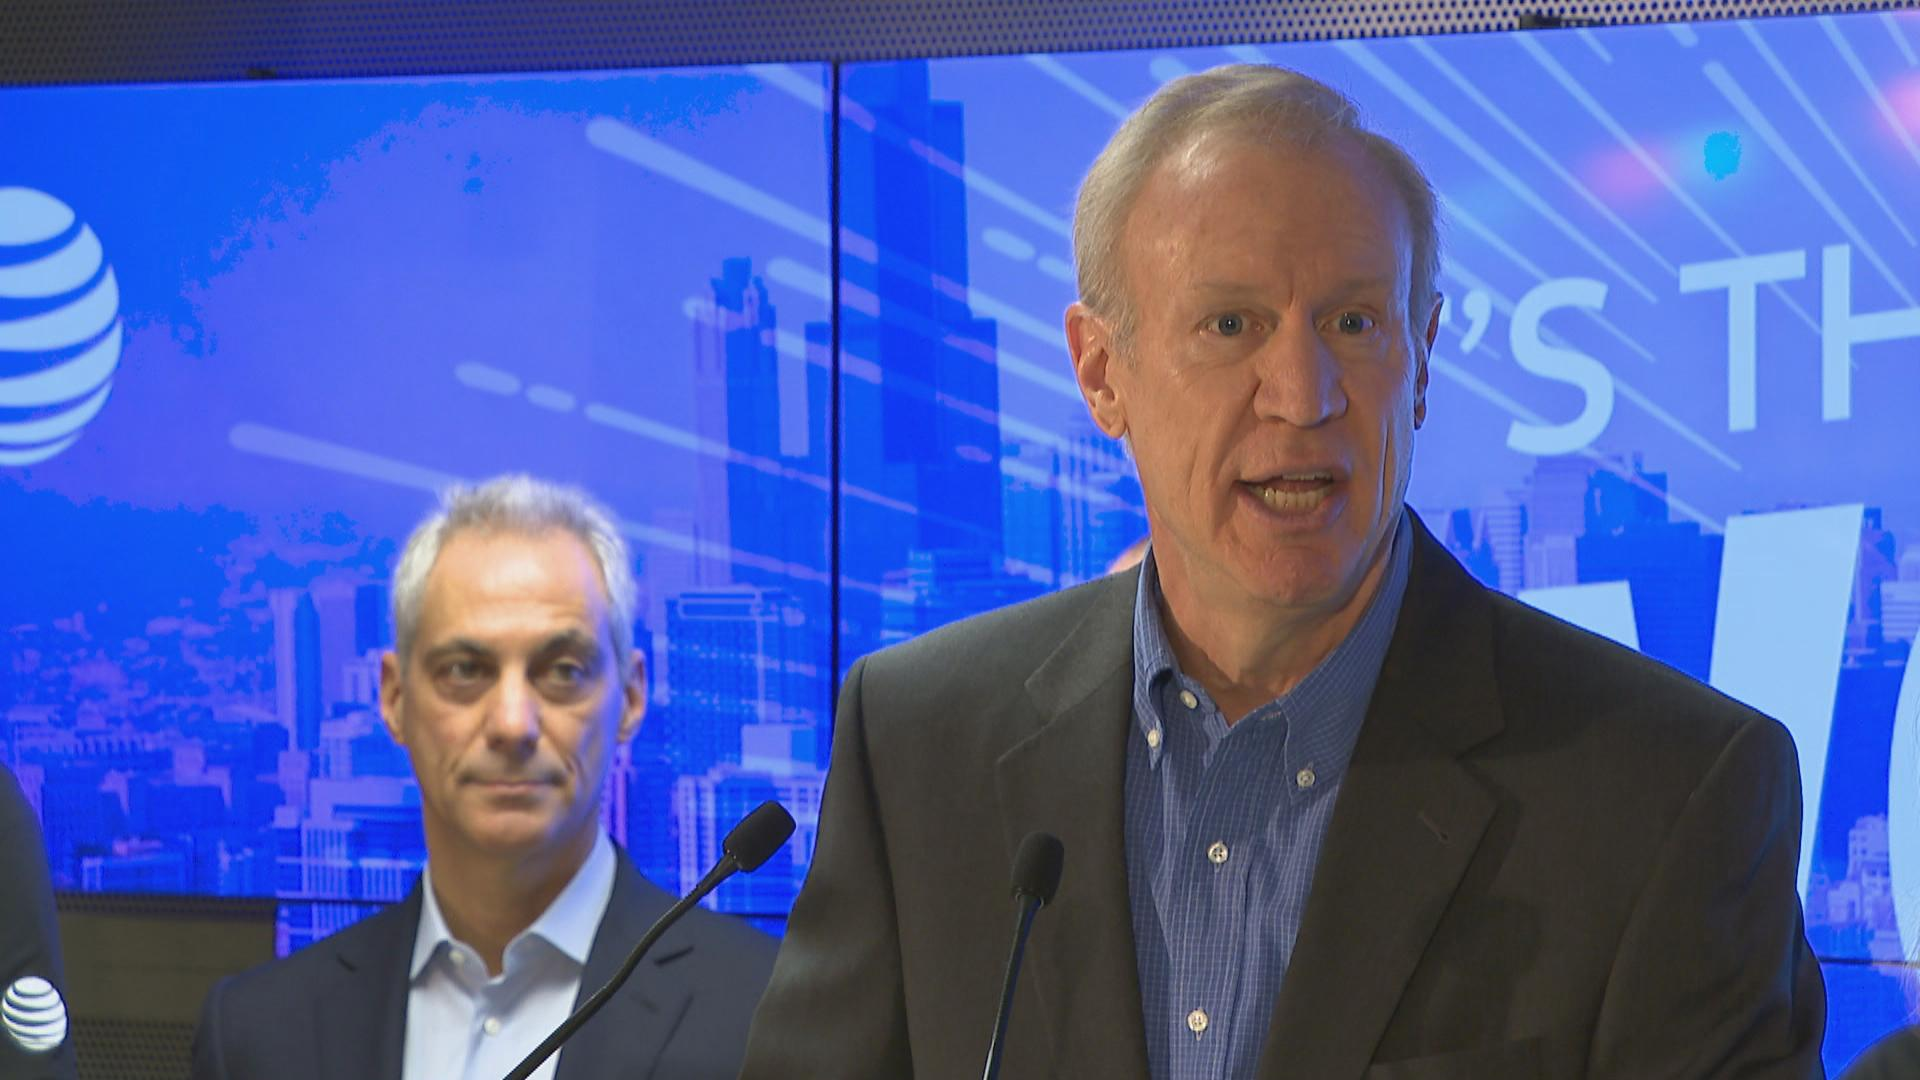 Gov. Bruce Rauner speaks Wednesday at a ribbon-cutting for a new AT&T call center on the Northwest Side. (Chicago Tonight)